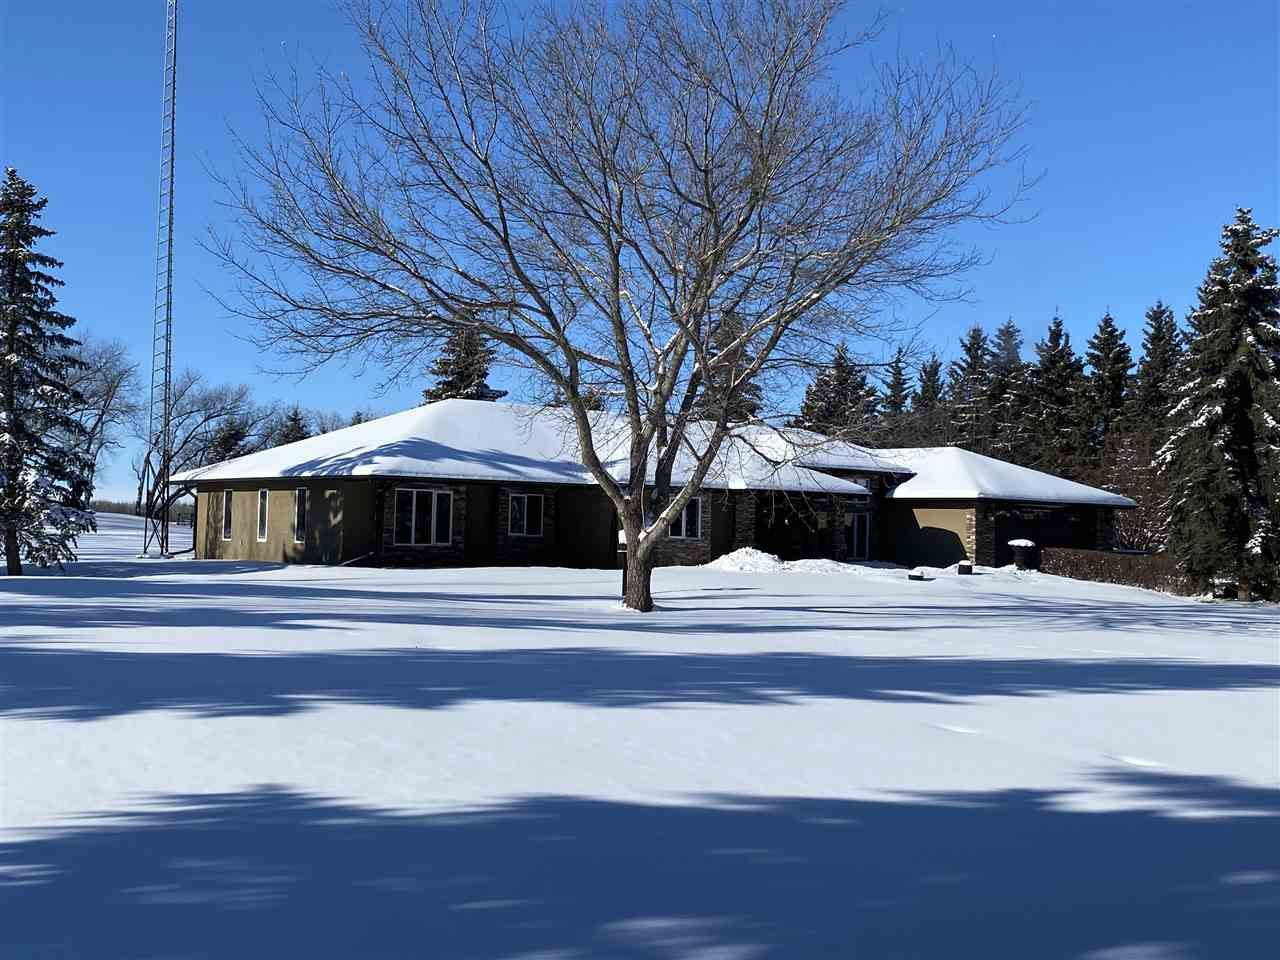 Main Photo: 6, 60010 RGE RD 272: Rural Westlock County House for sale : MLS®# E4228120